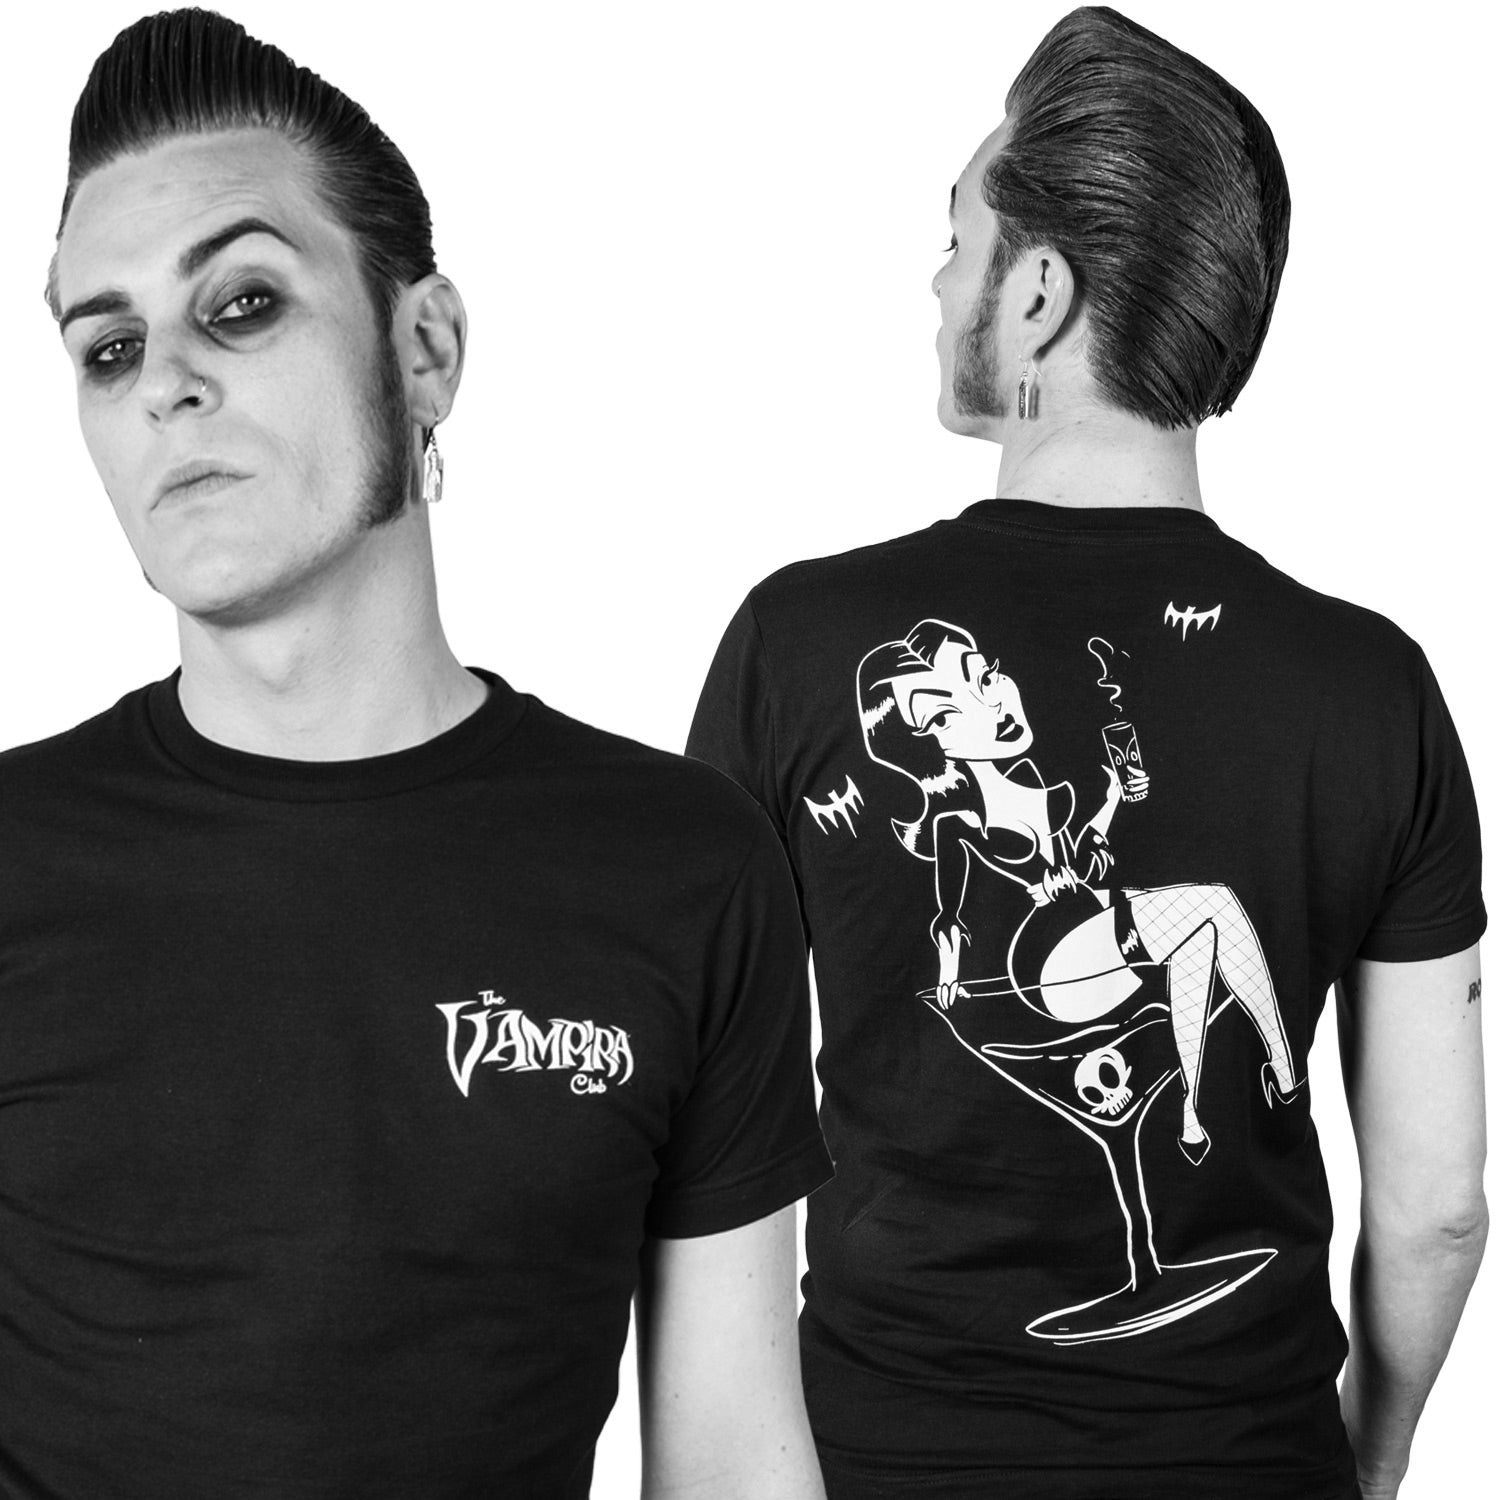 Vampira Cocktail Club Mens T-shirt